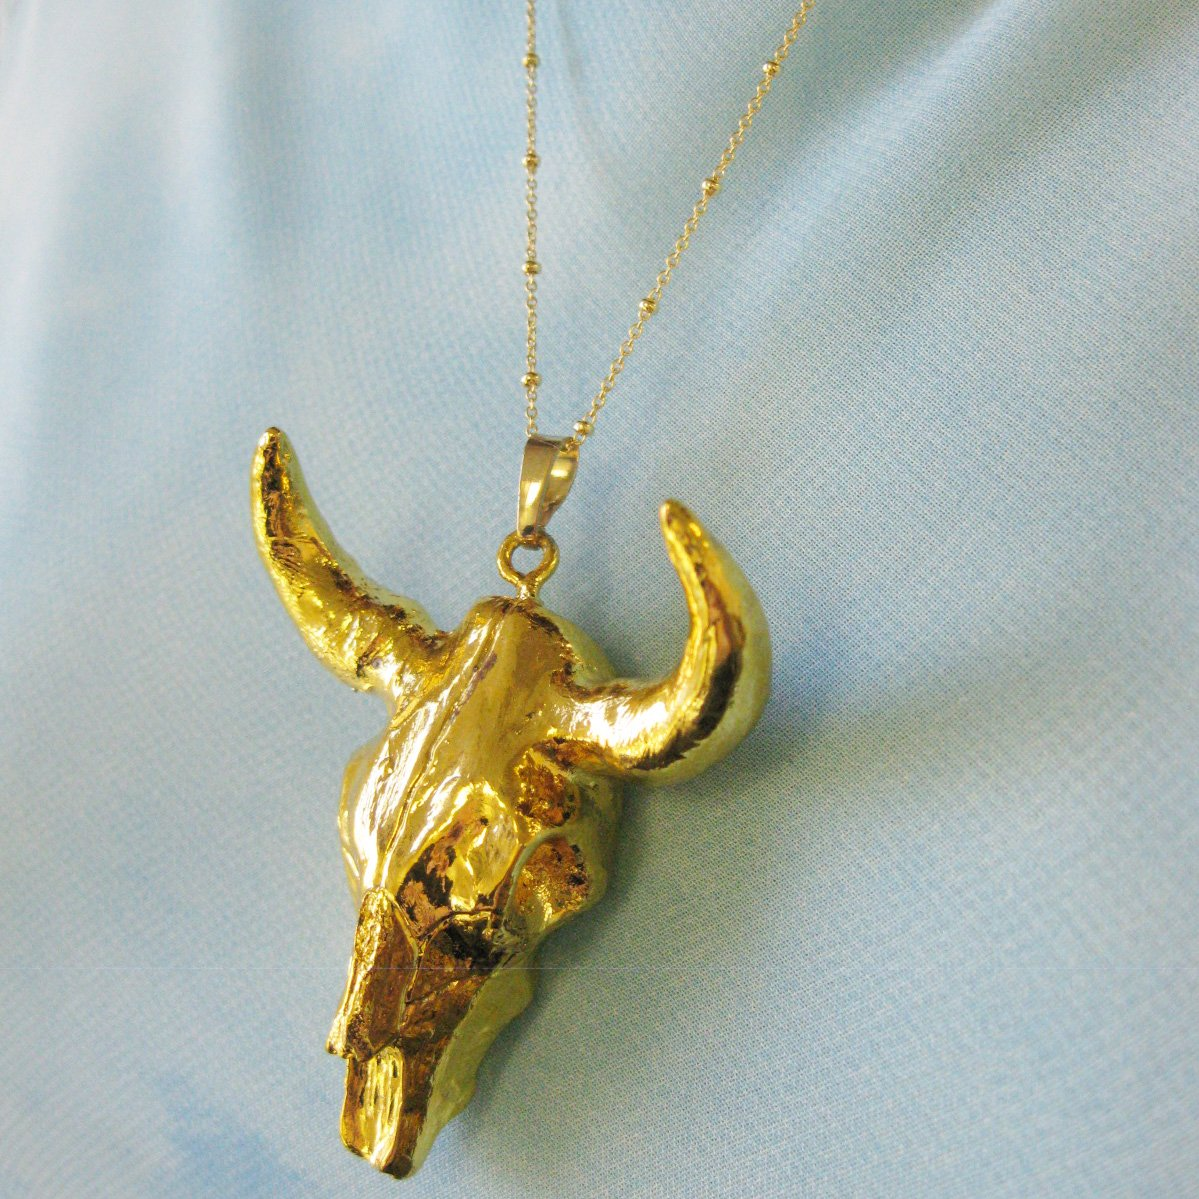 Longhorn Necklace Gold Covered Cattle Skull Pendant Necklace Gold plated Sterling Silver Necklace Chain